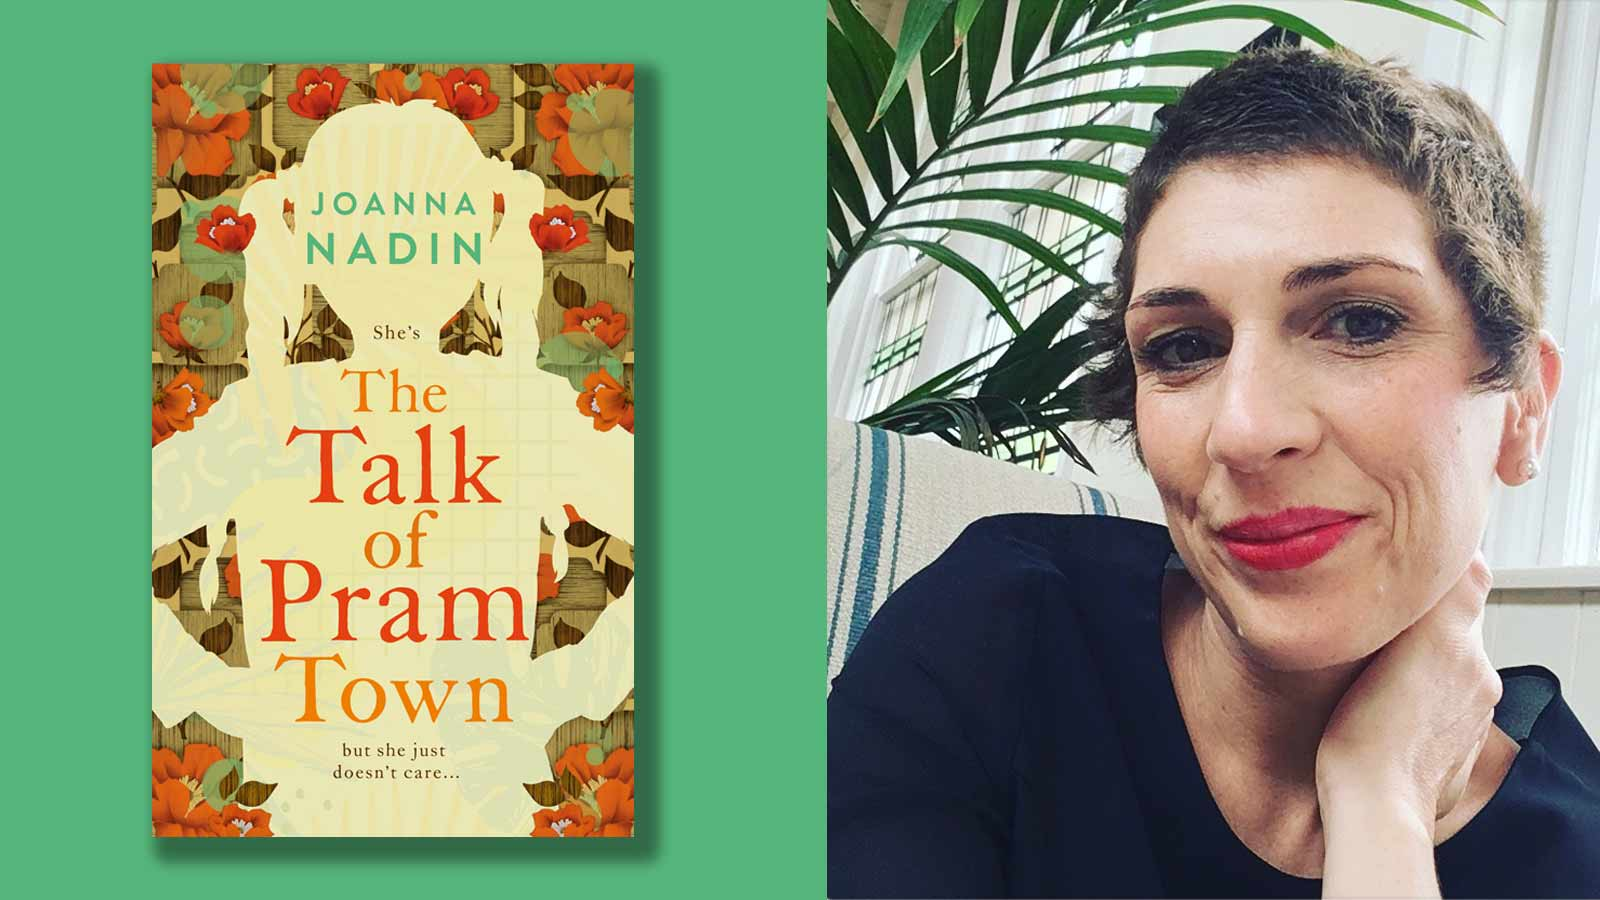 The Talk of Pram Town book cover and photo of Joanna Nadin